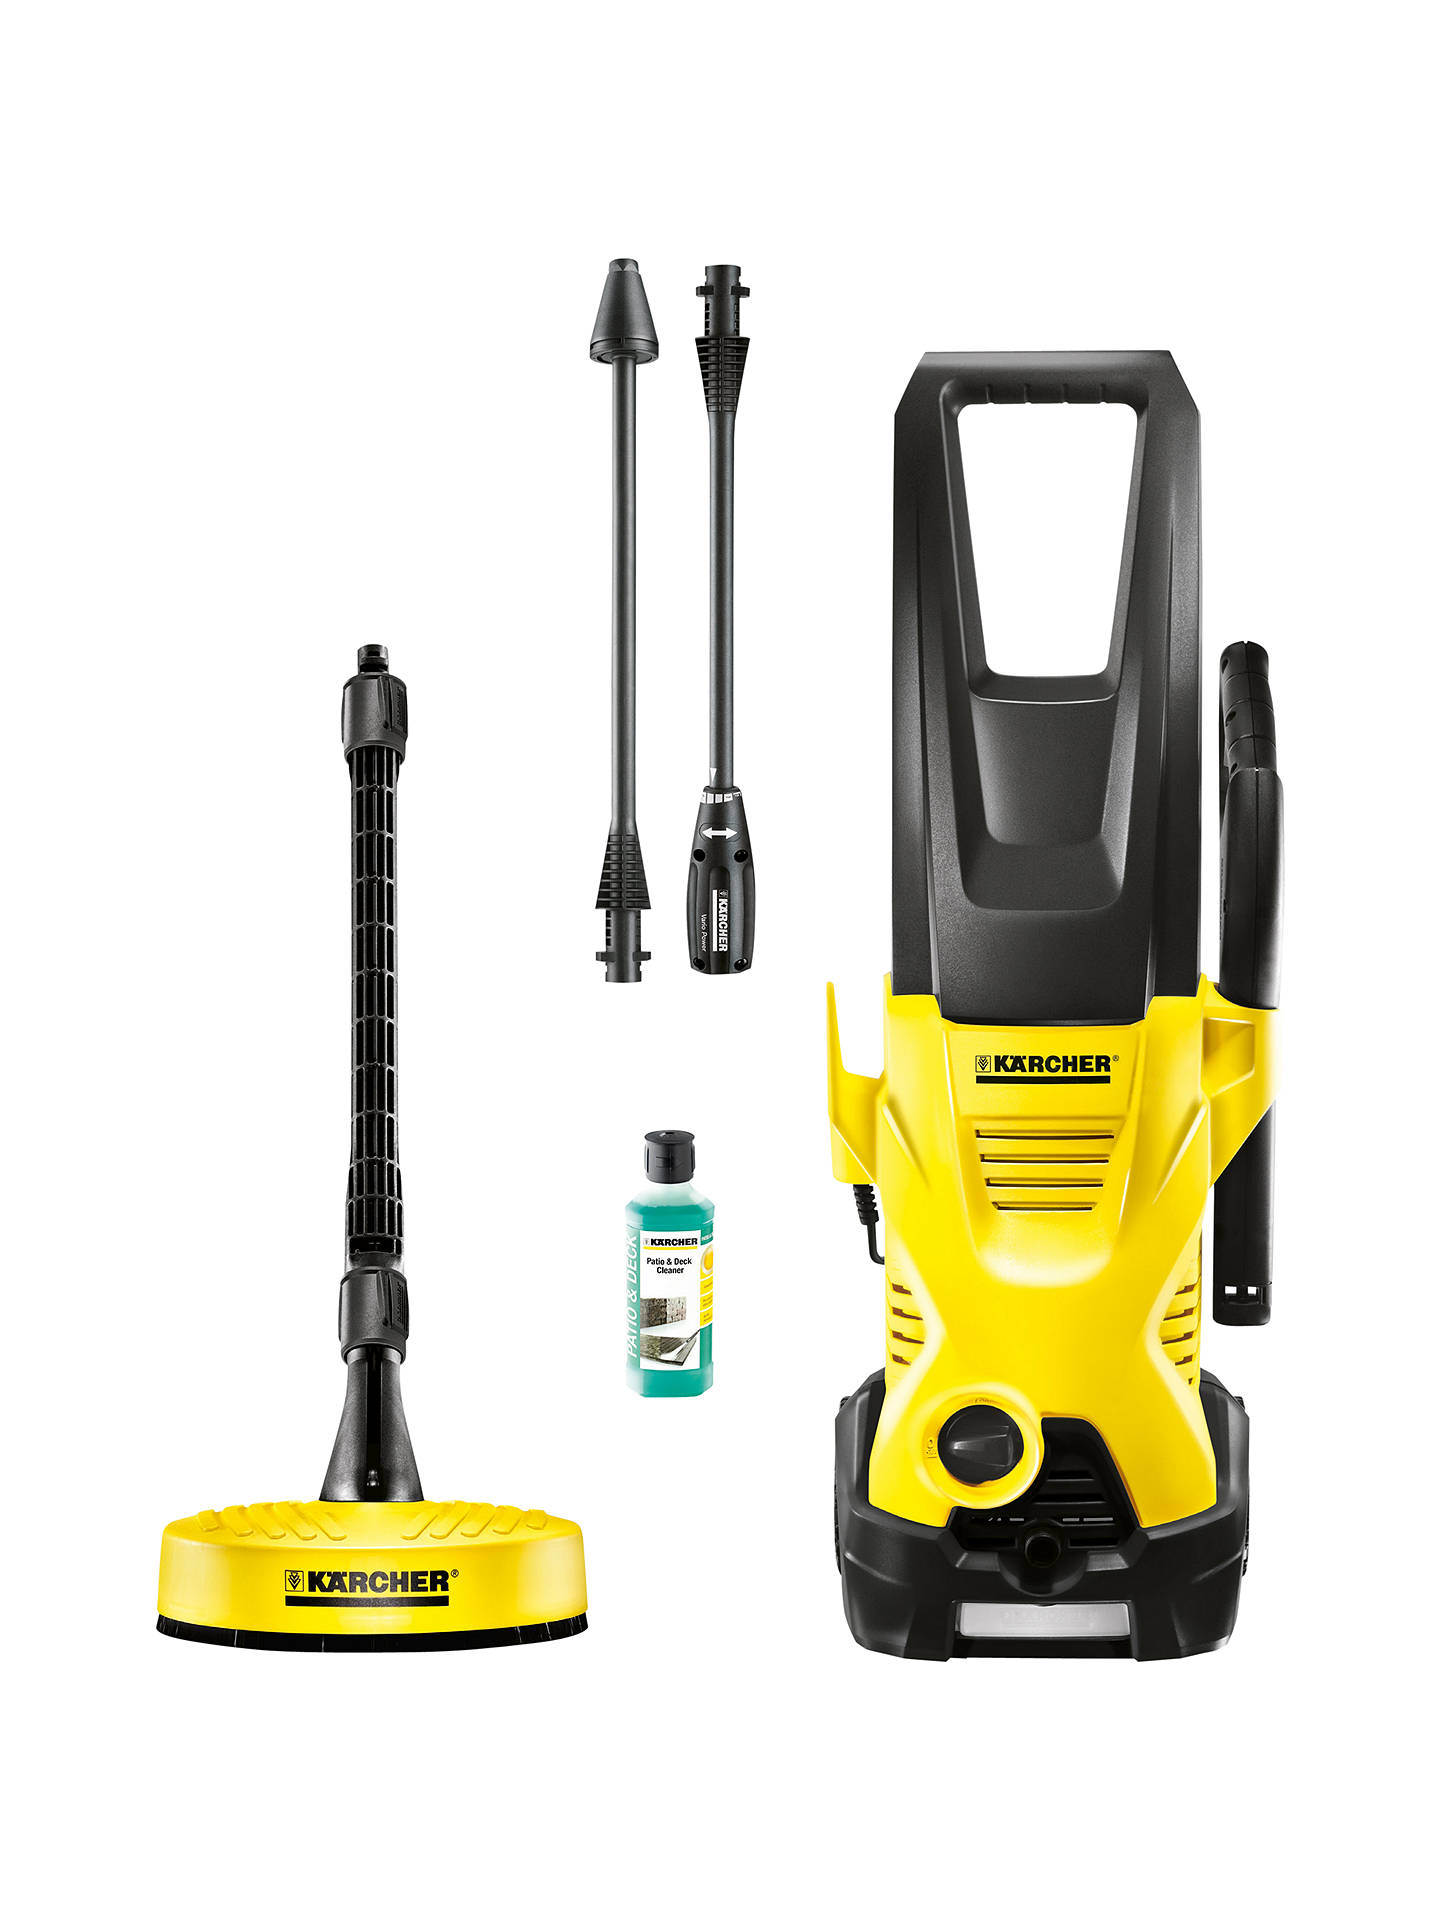 k rcher k2 premium home pressure washer at john lewis. Black Bedroom Furniture Sets. Home Design Ideas